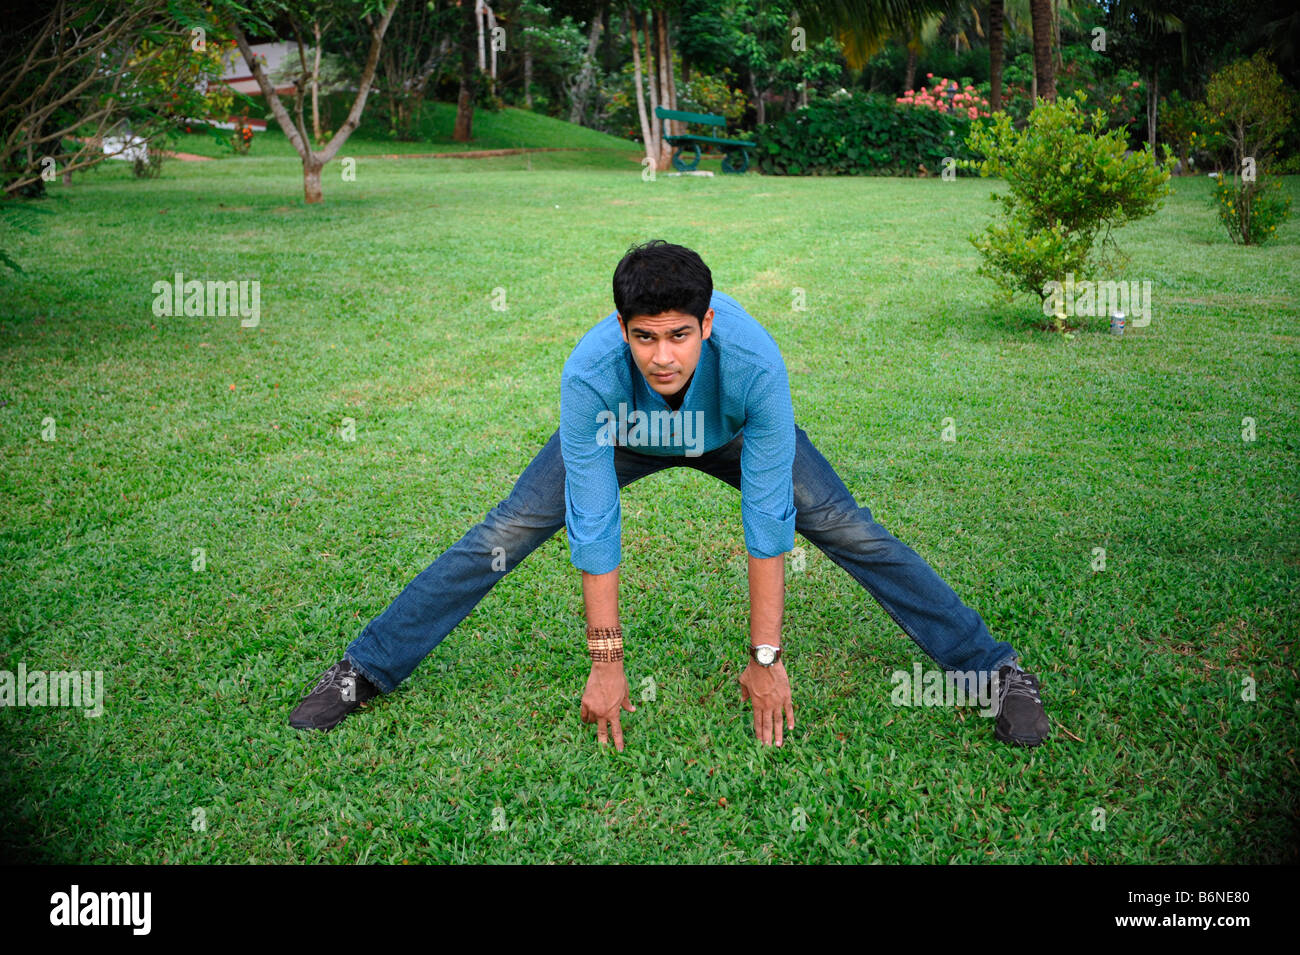 An indian boy doing excercise - Stock Image